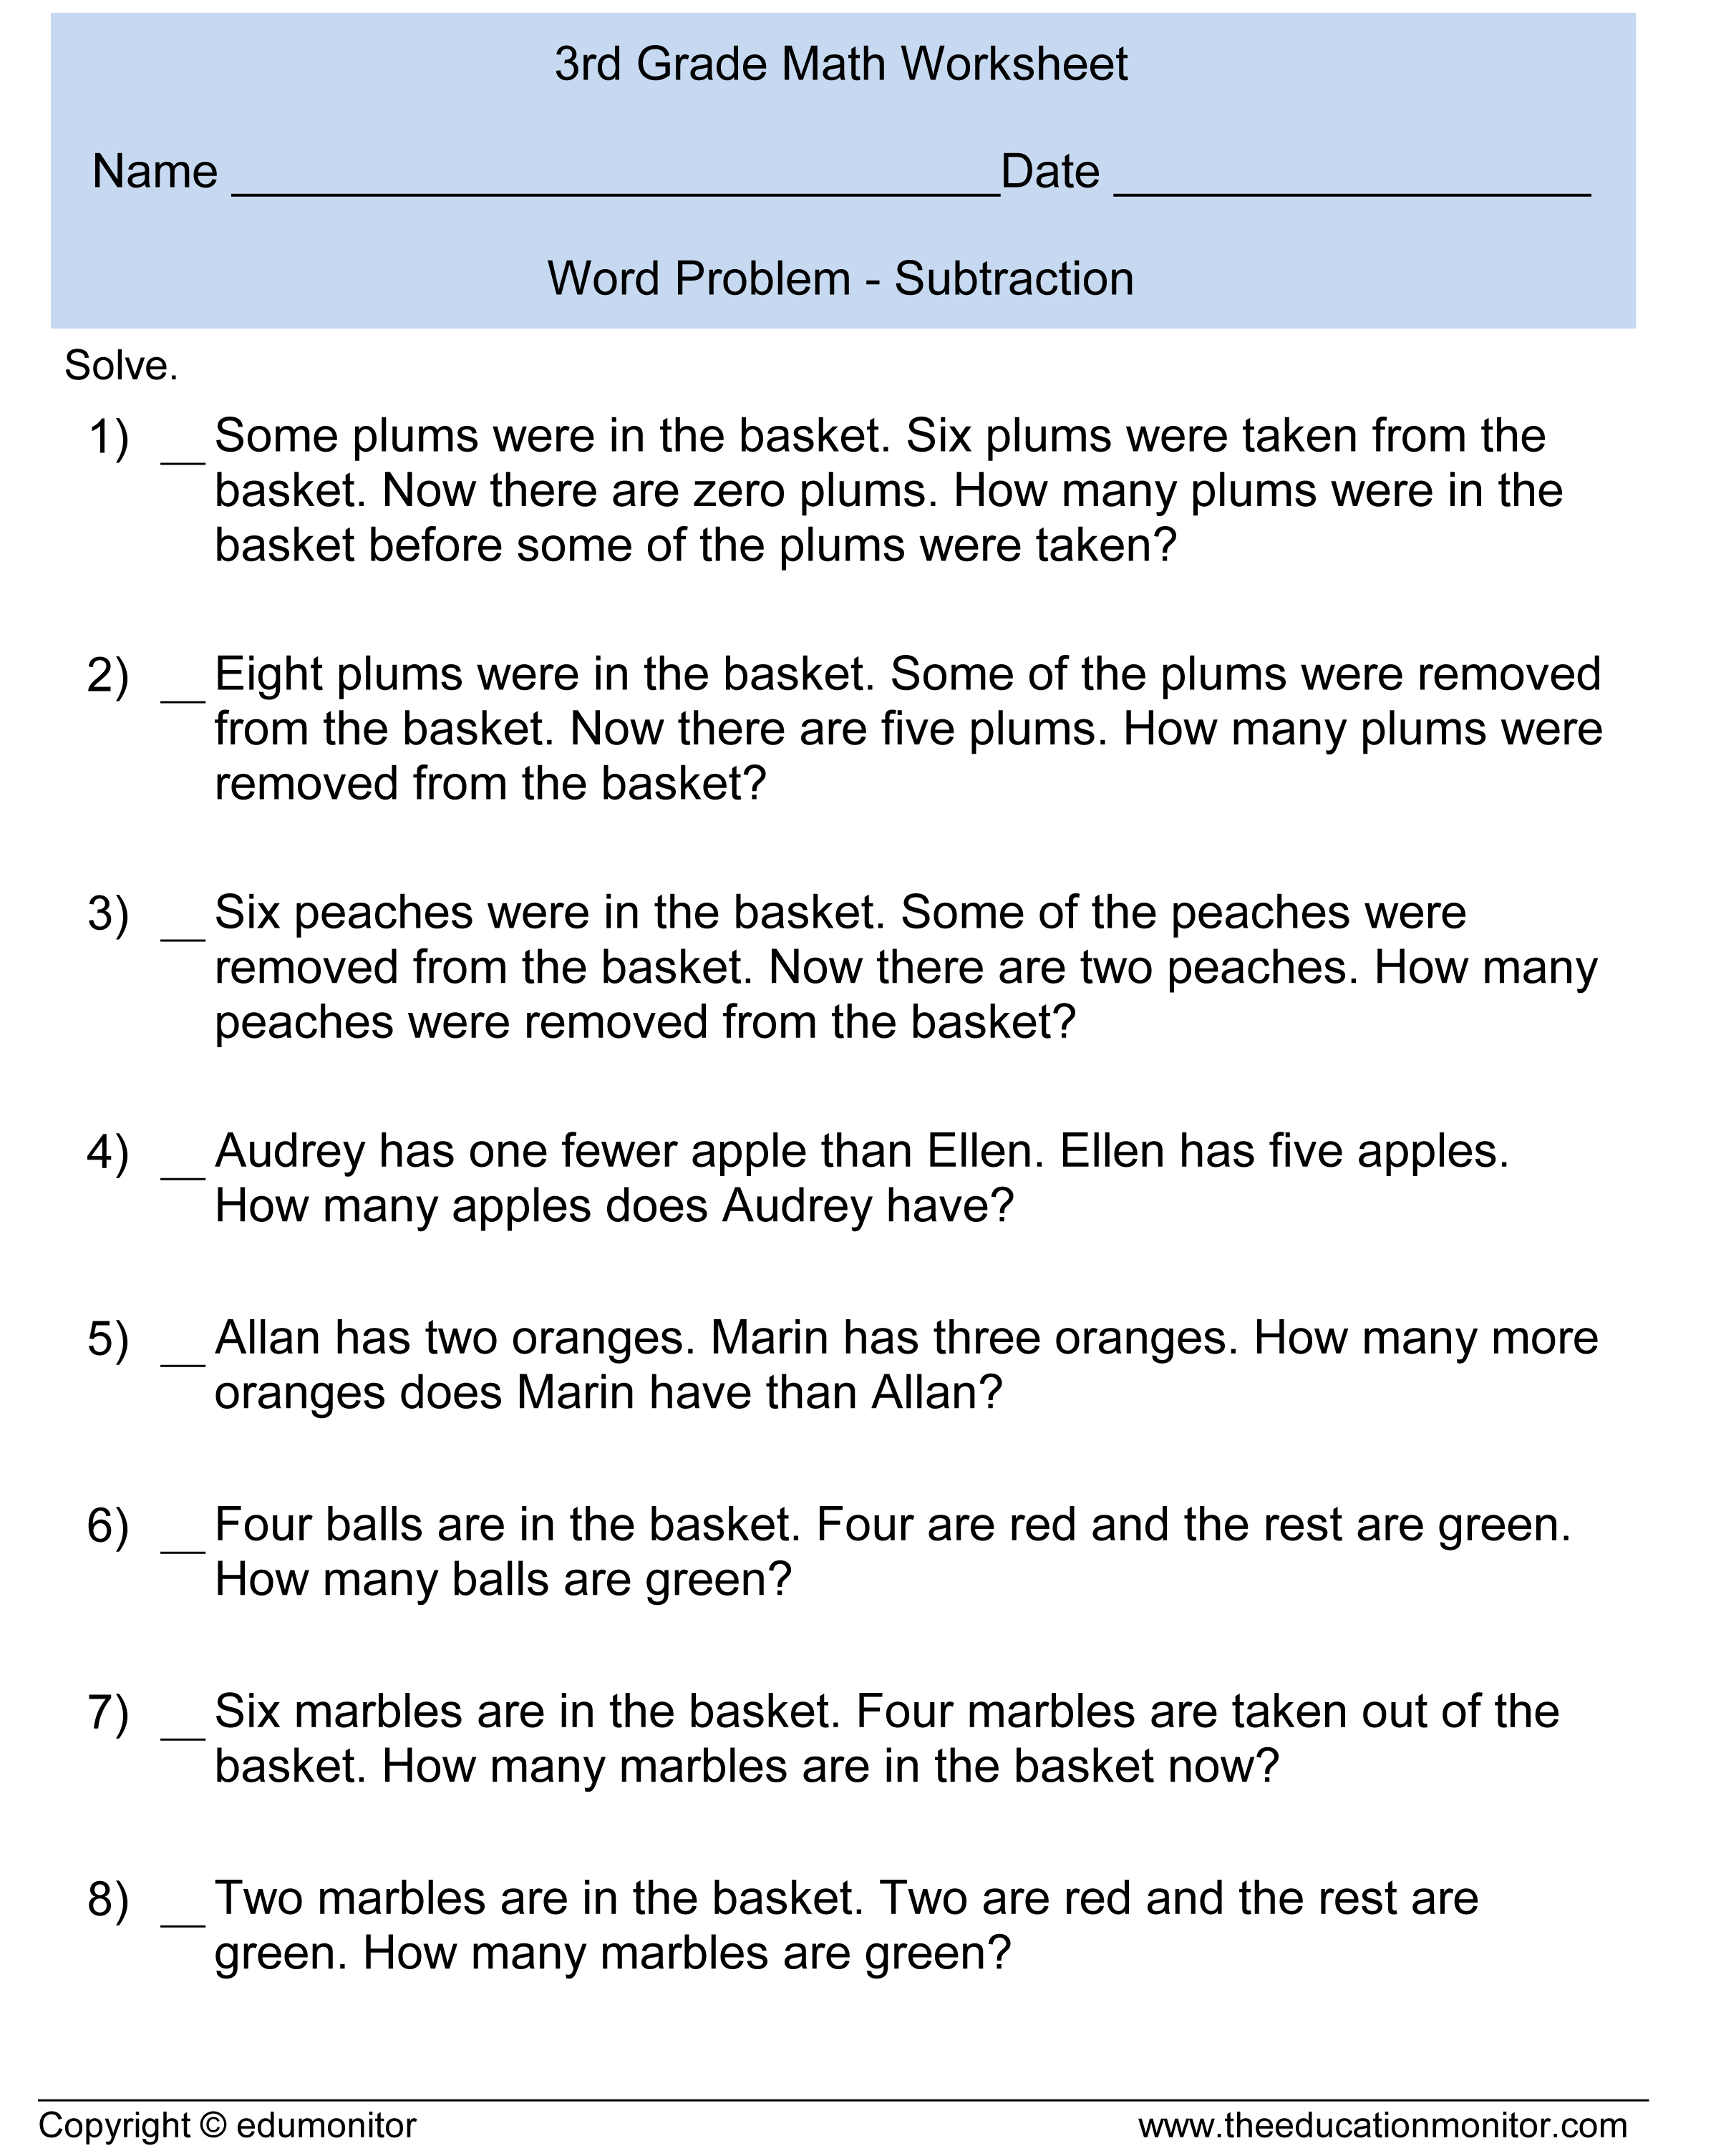 Worksheets Second Grade Math Worksheets Word Problems addition word problem worksheets 2nd grade 8673299 aks flight info grade